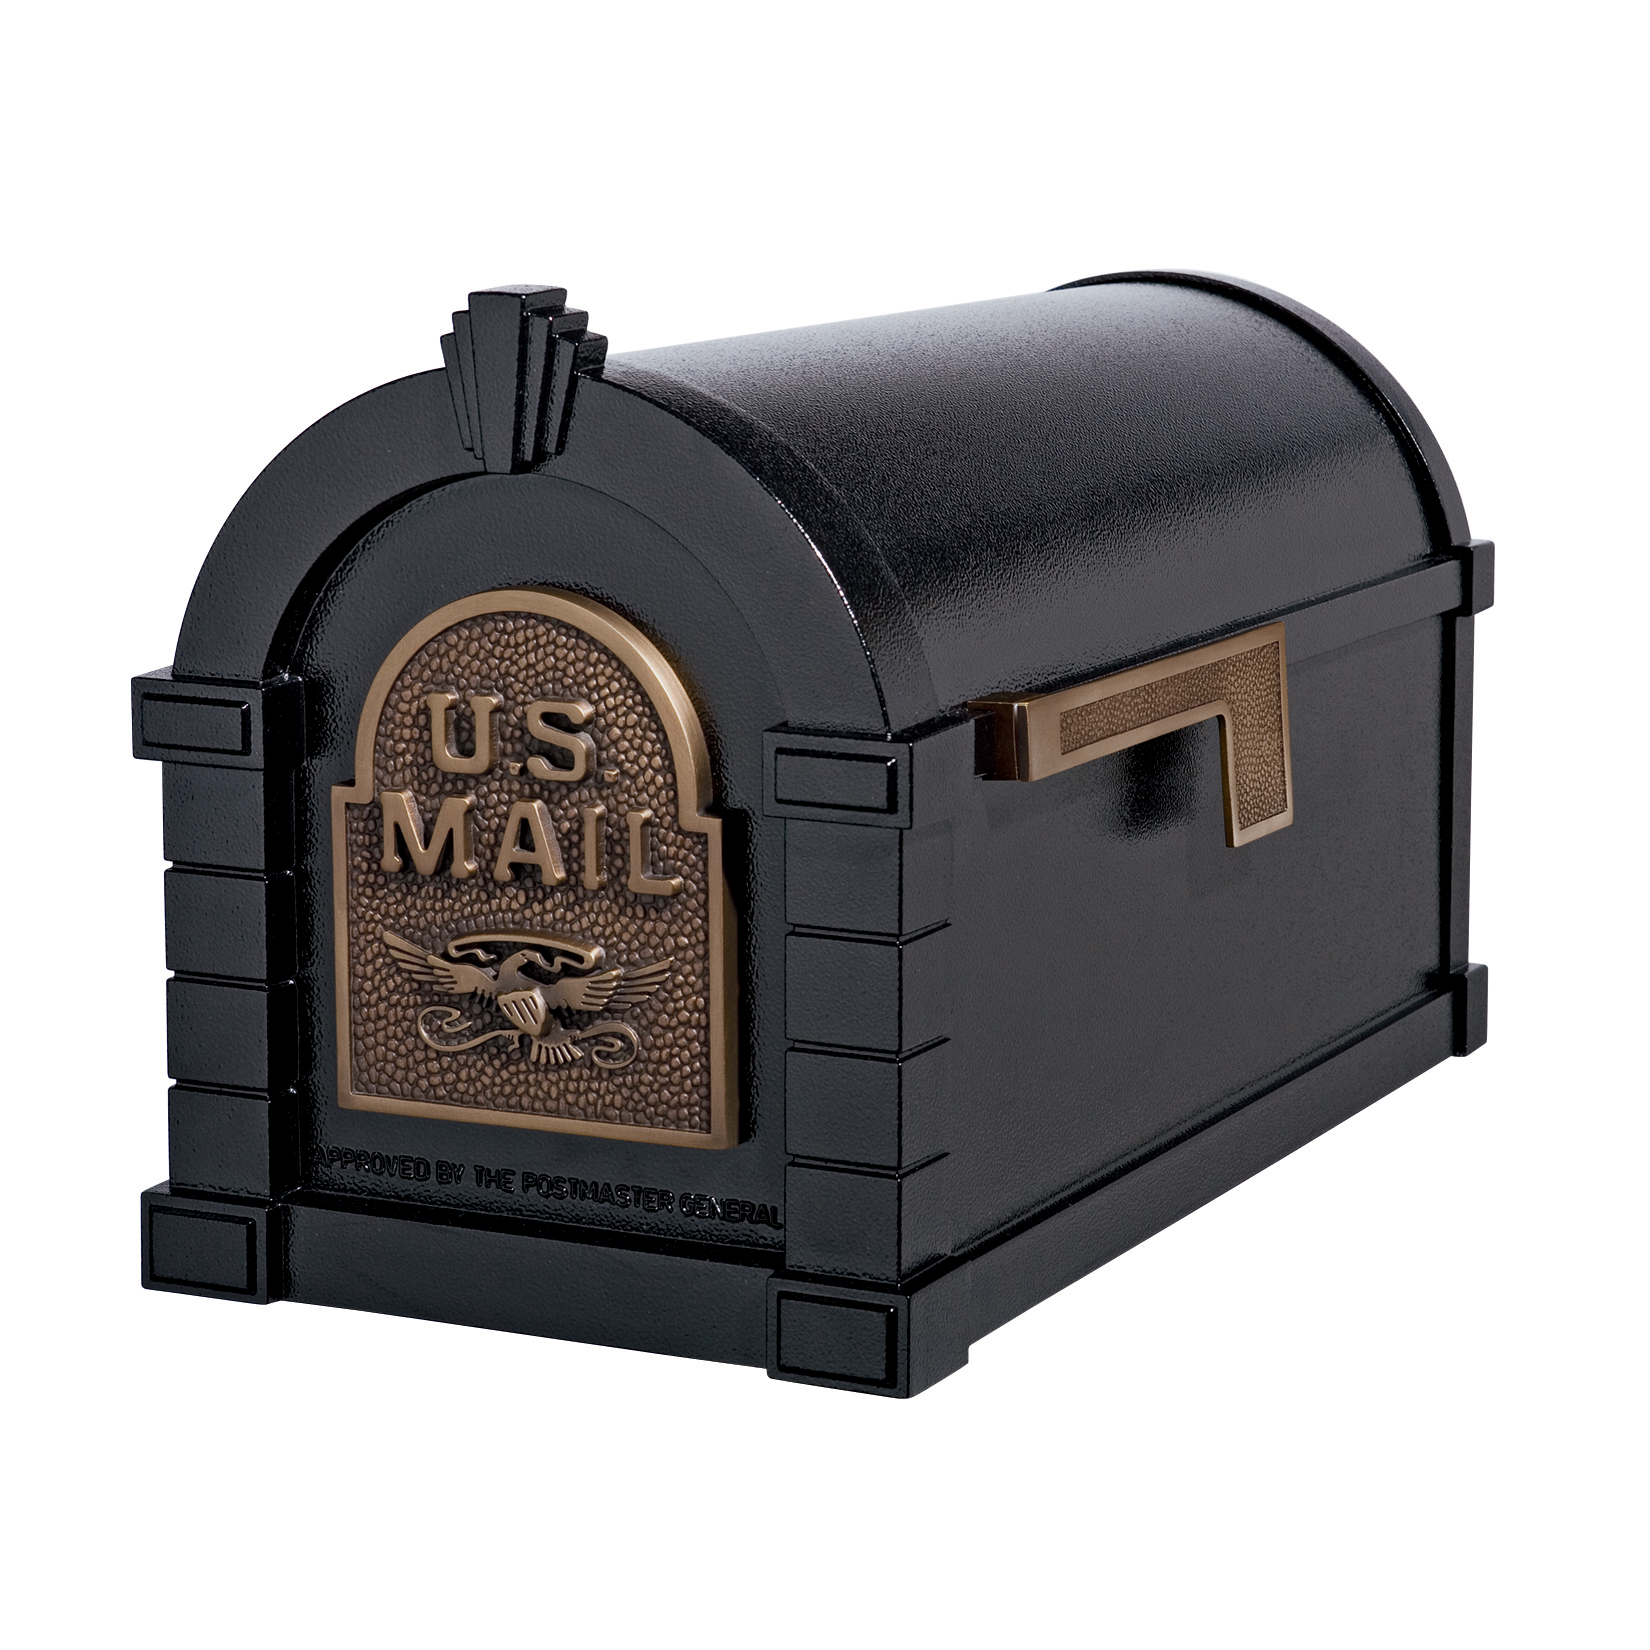 Gaines Eagle Keystone Mailboxes - Black with Antique Bronze